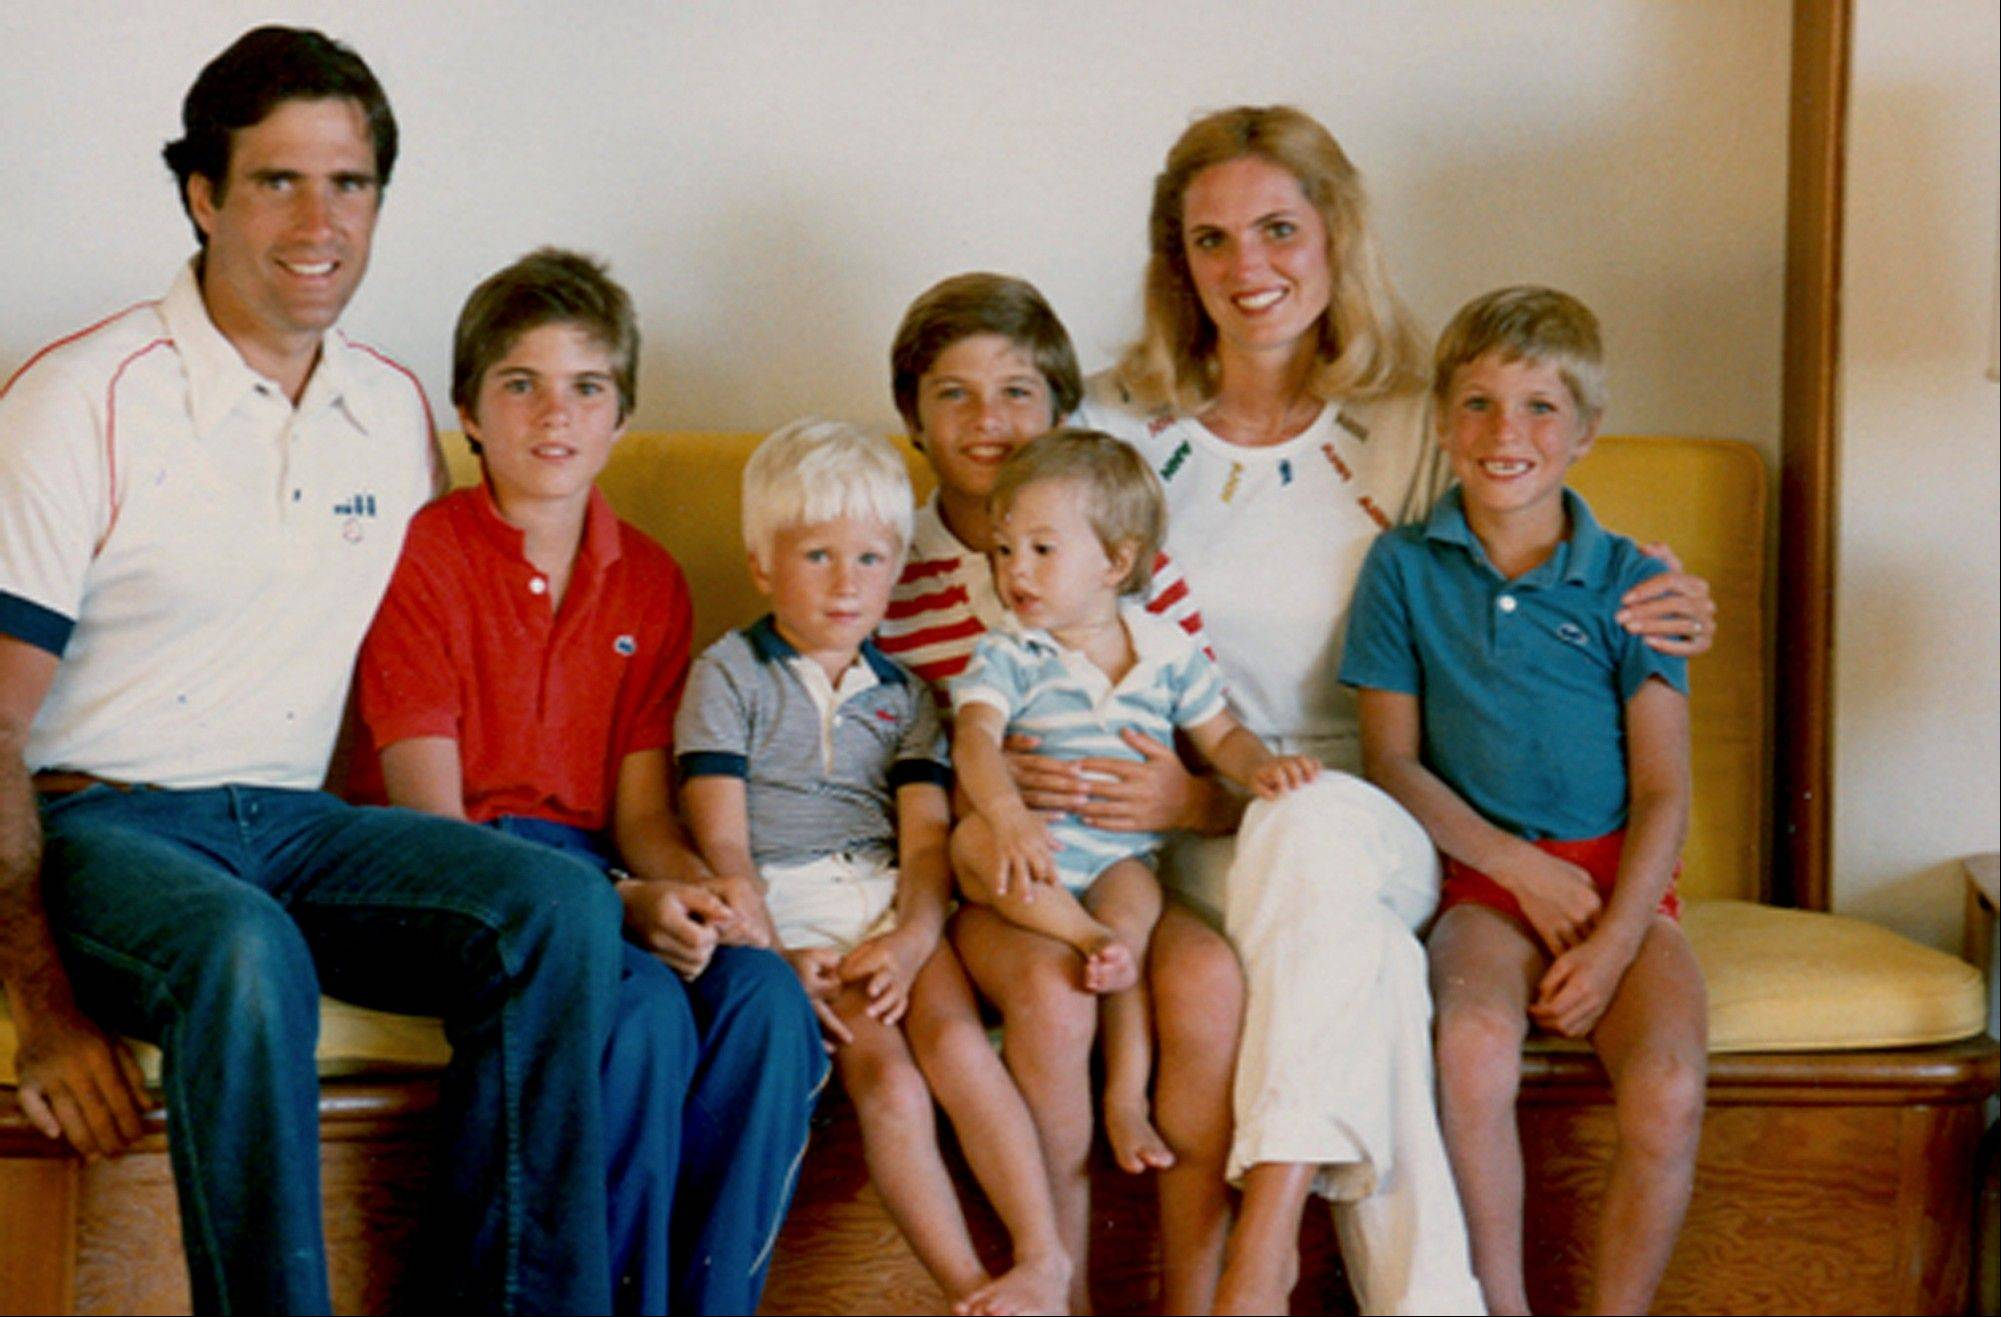 This 1982 photo provided by the Romney for President, Inc., location unknown, shows the Romney family during summer vacation: from left, Mitt, Tagg, Ben, Matt, Craig, Ann and Josh Romney.